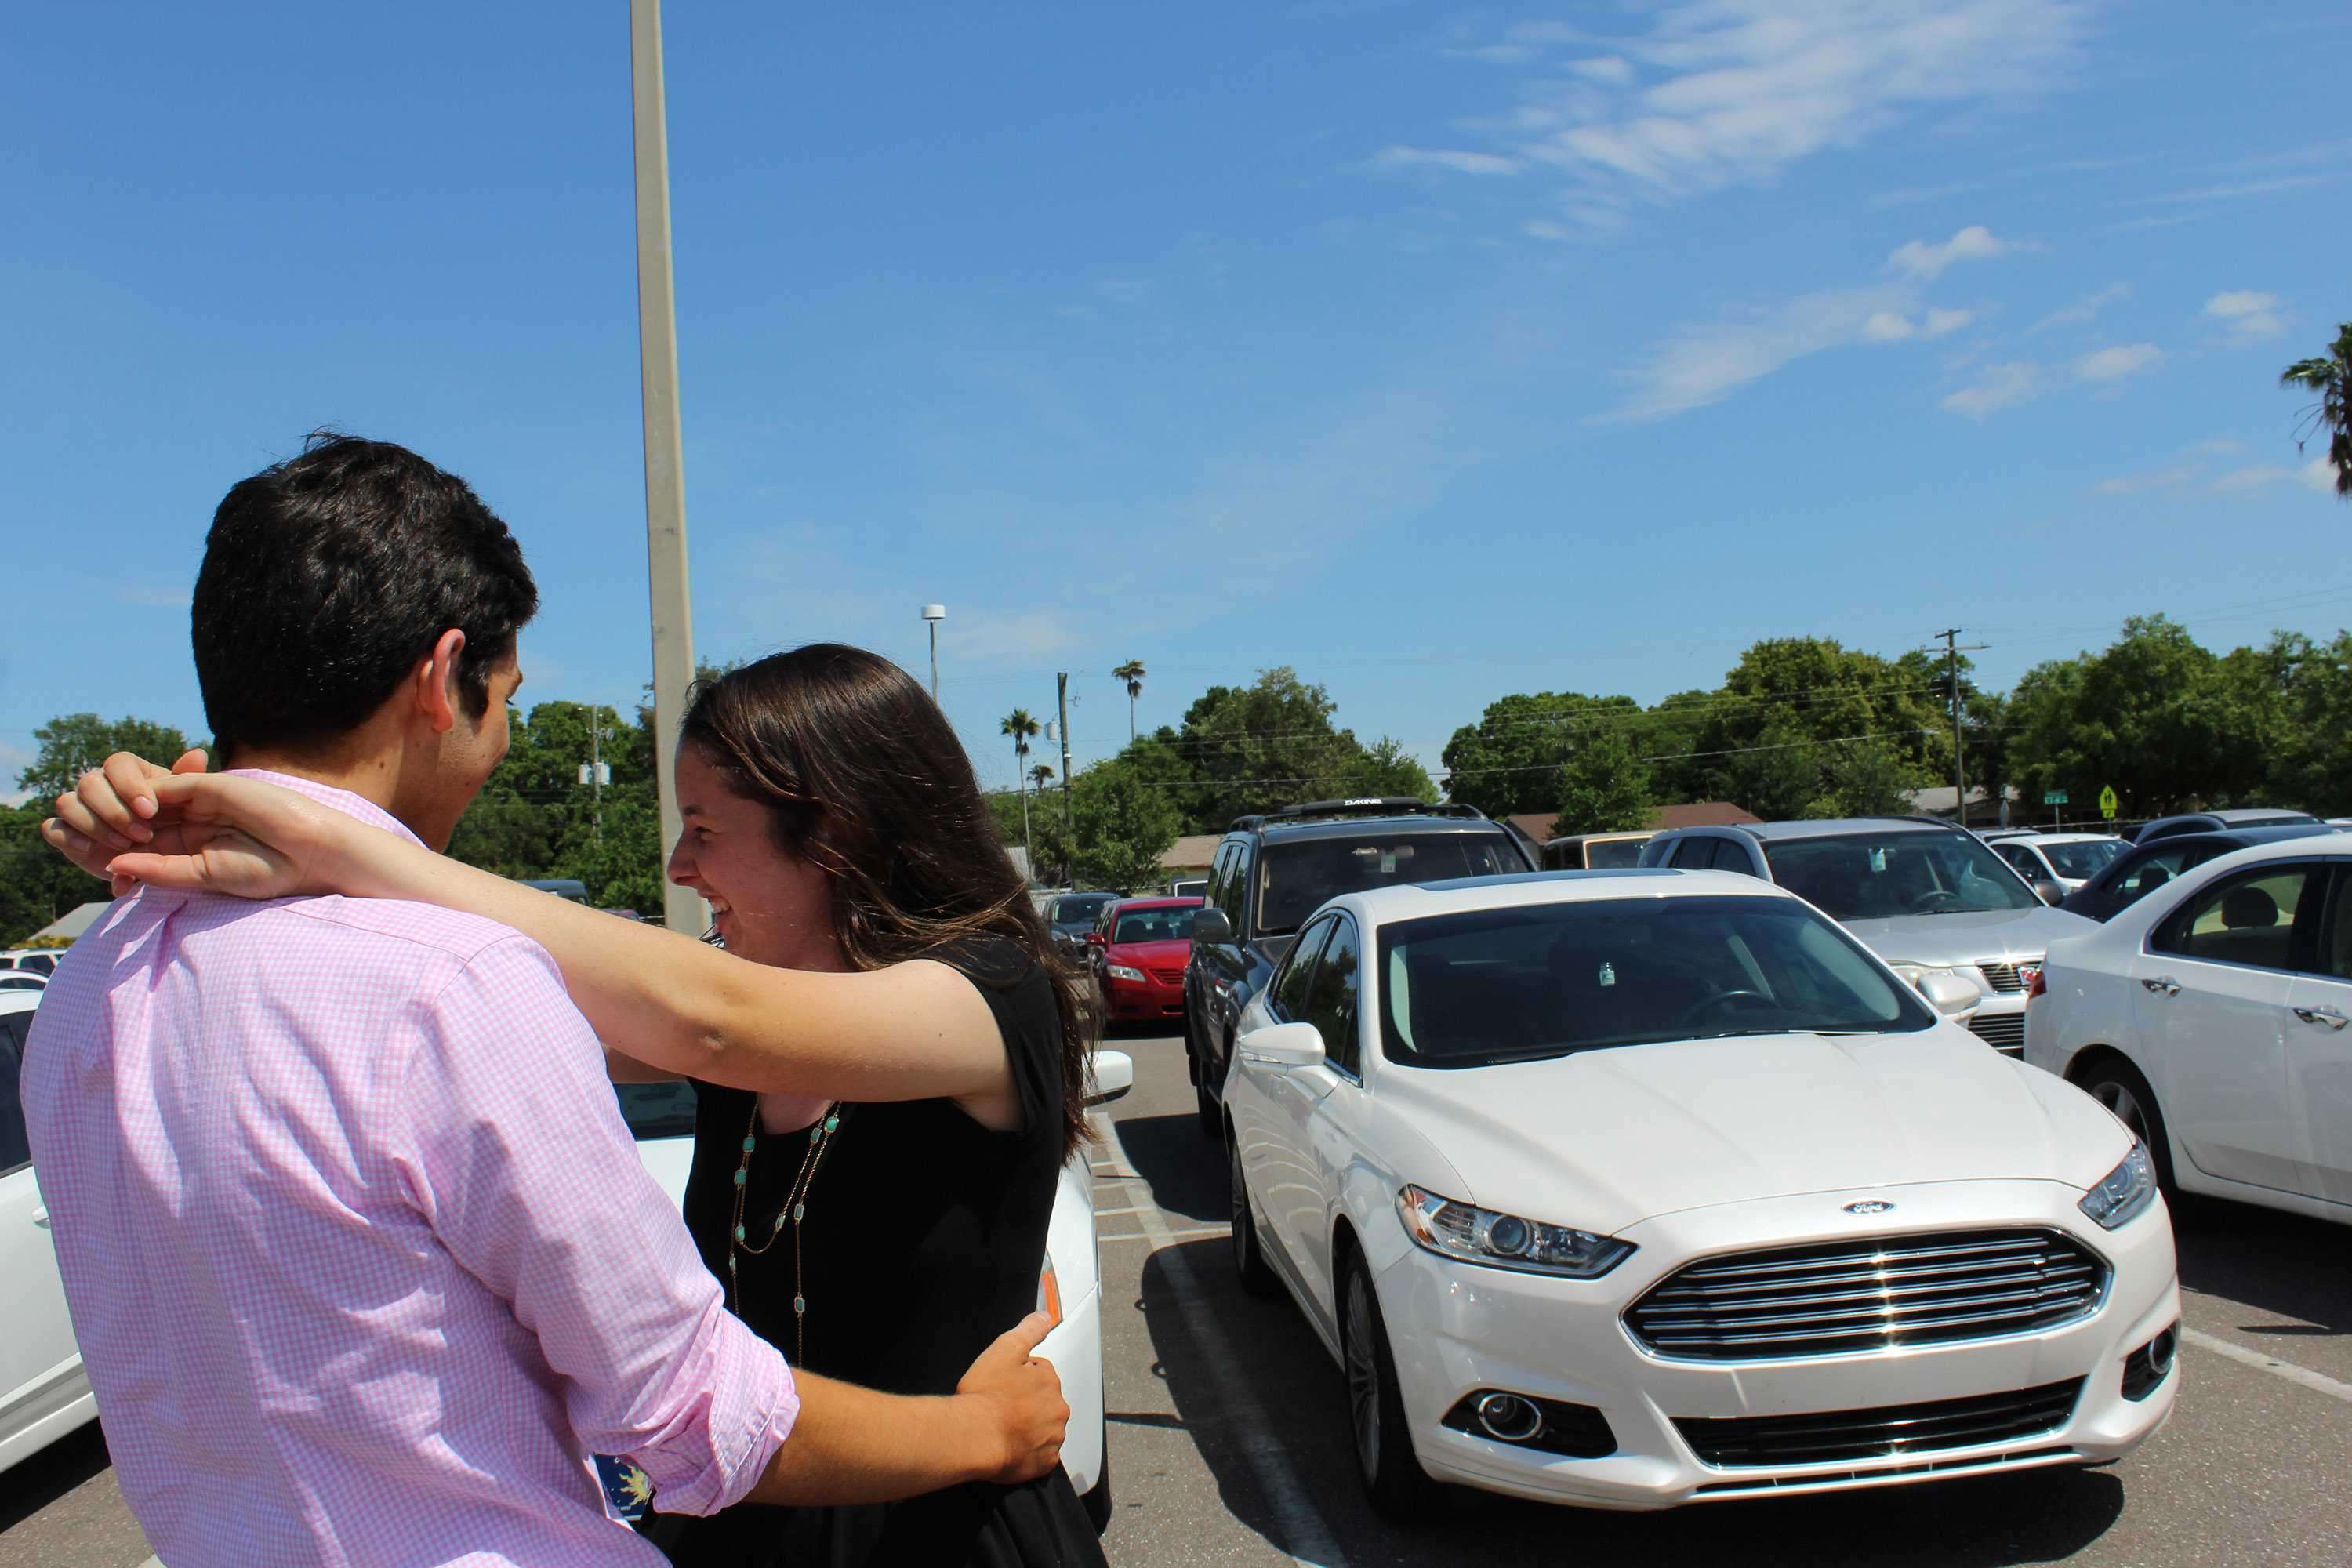 Student government hopes to utilize parked cars as spots for food and weary dancers.